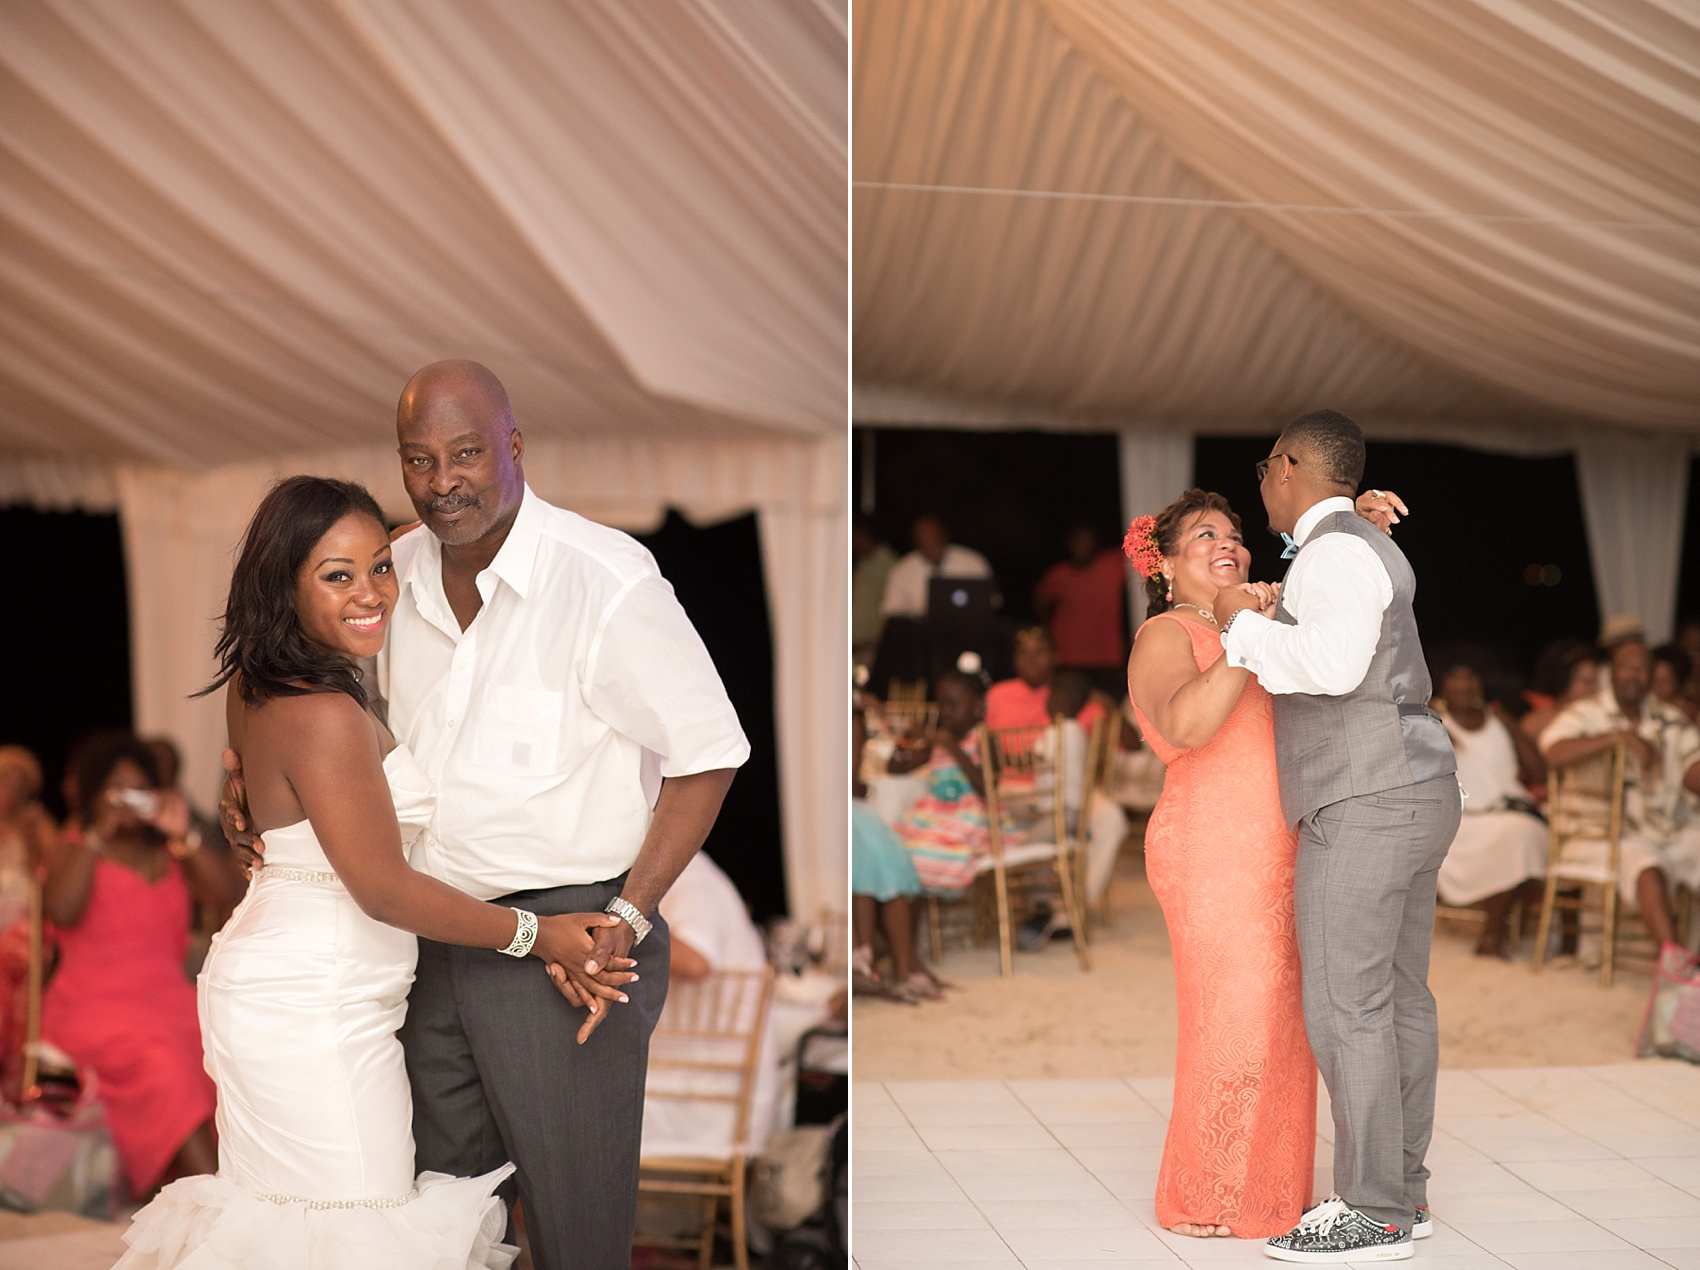 Iberostar Jamaica wedding photos, father daughter dance. Images by Mikkel Paige Photography.